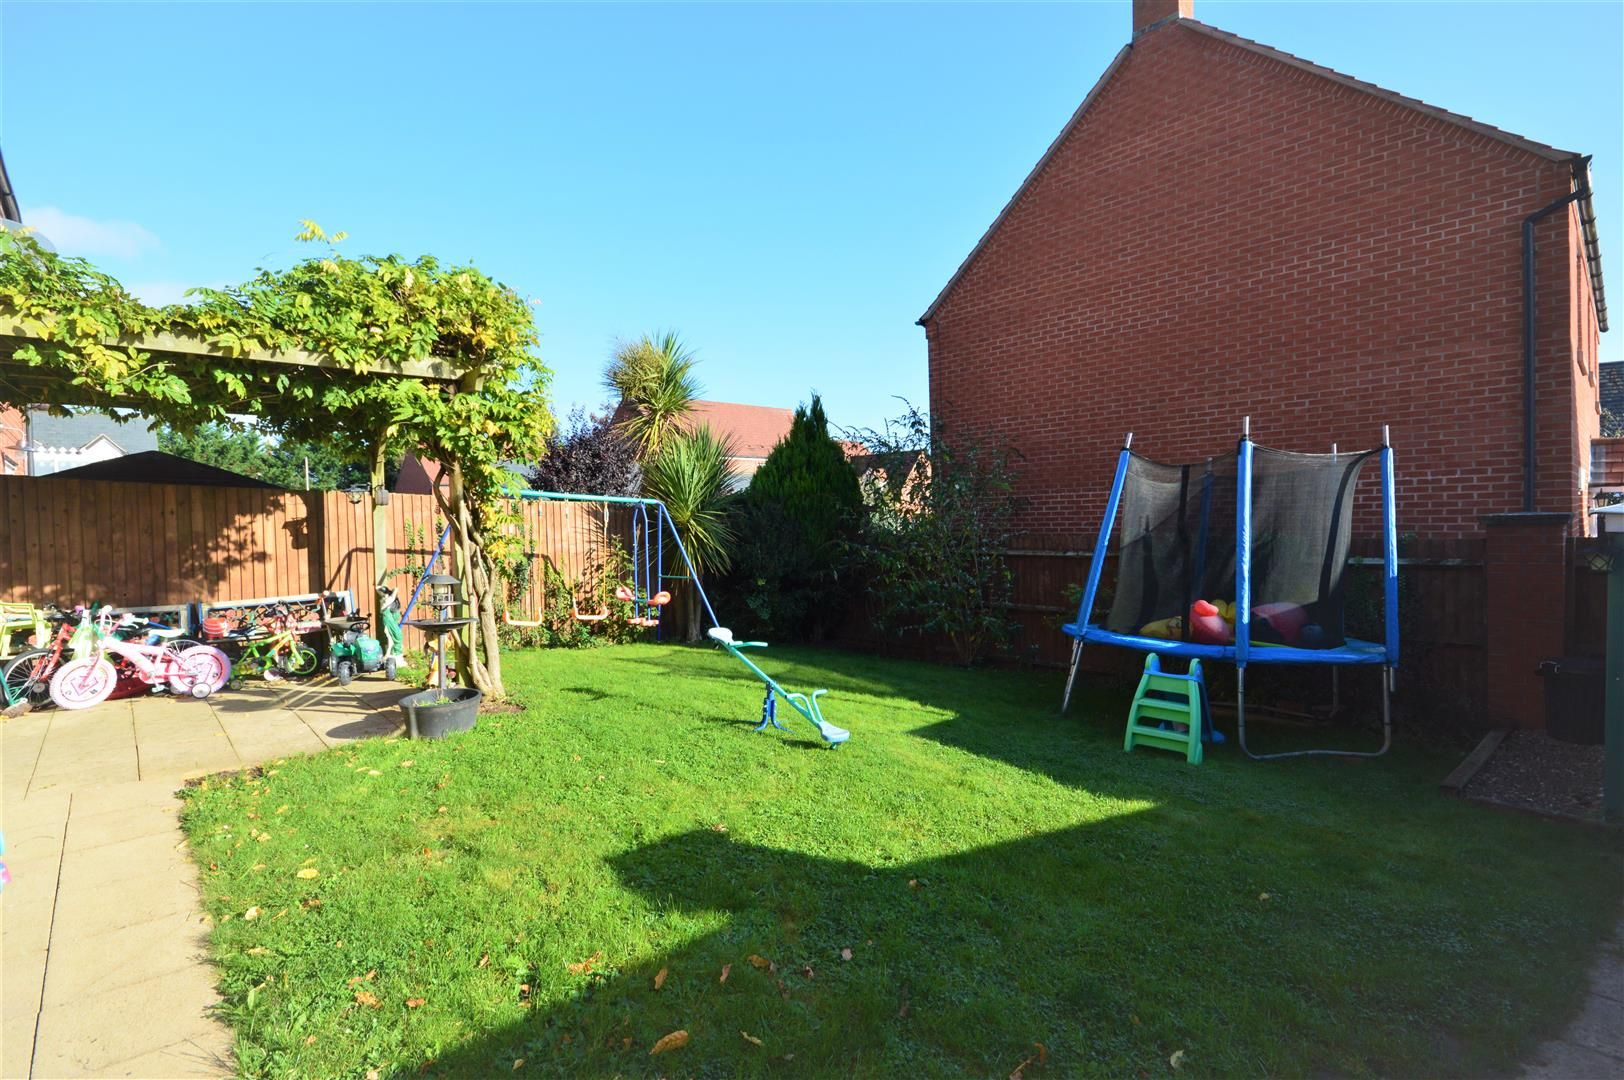 4 bed semi-detached for sale in Leominster 6